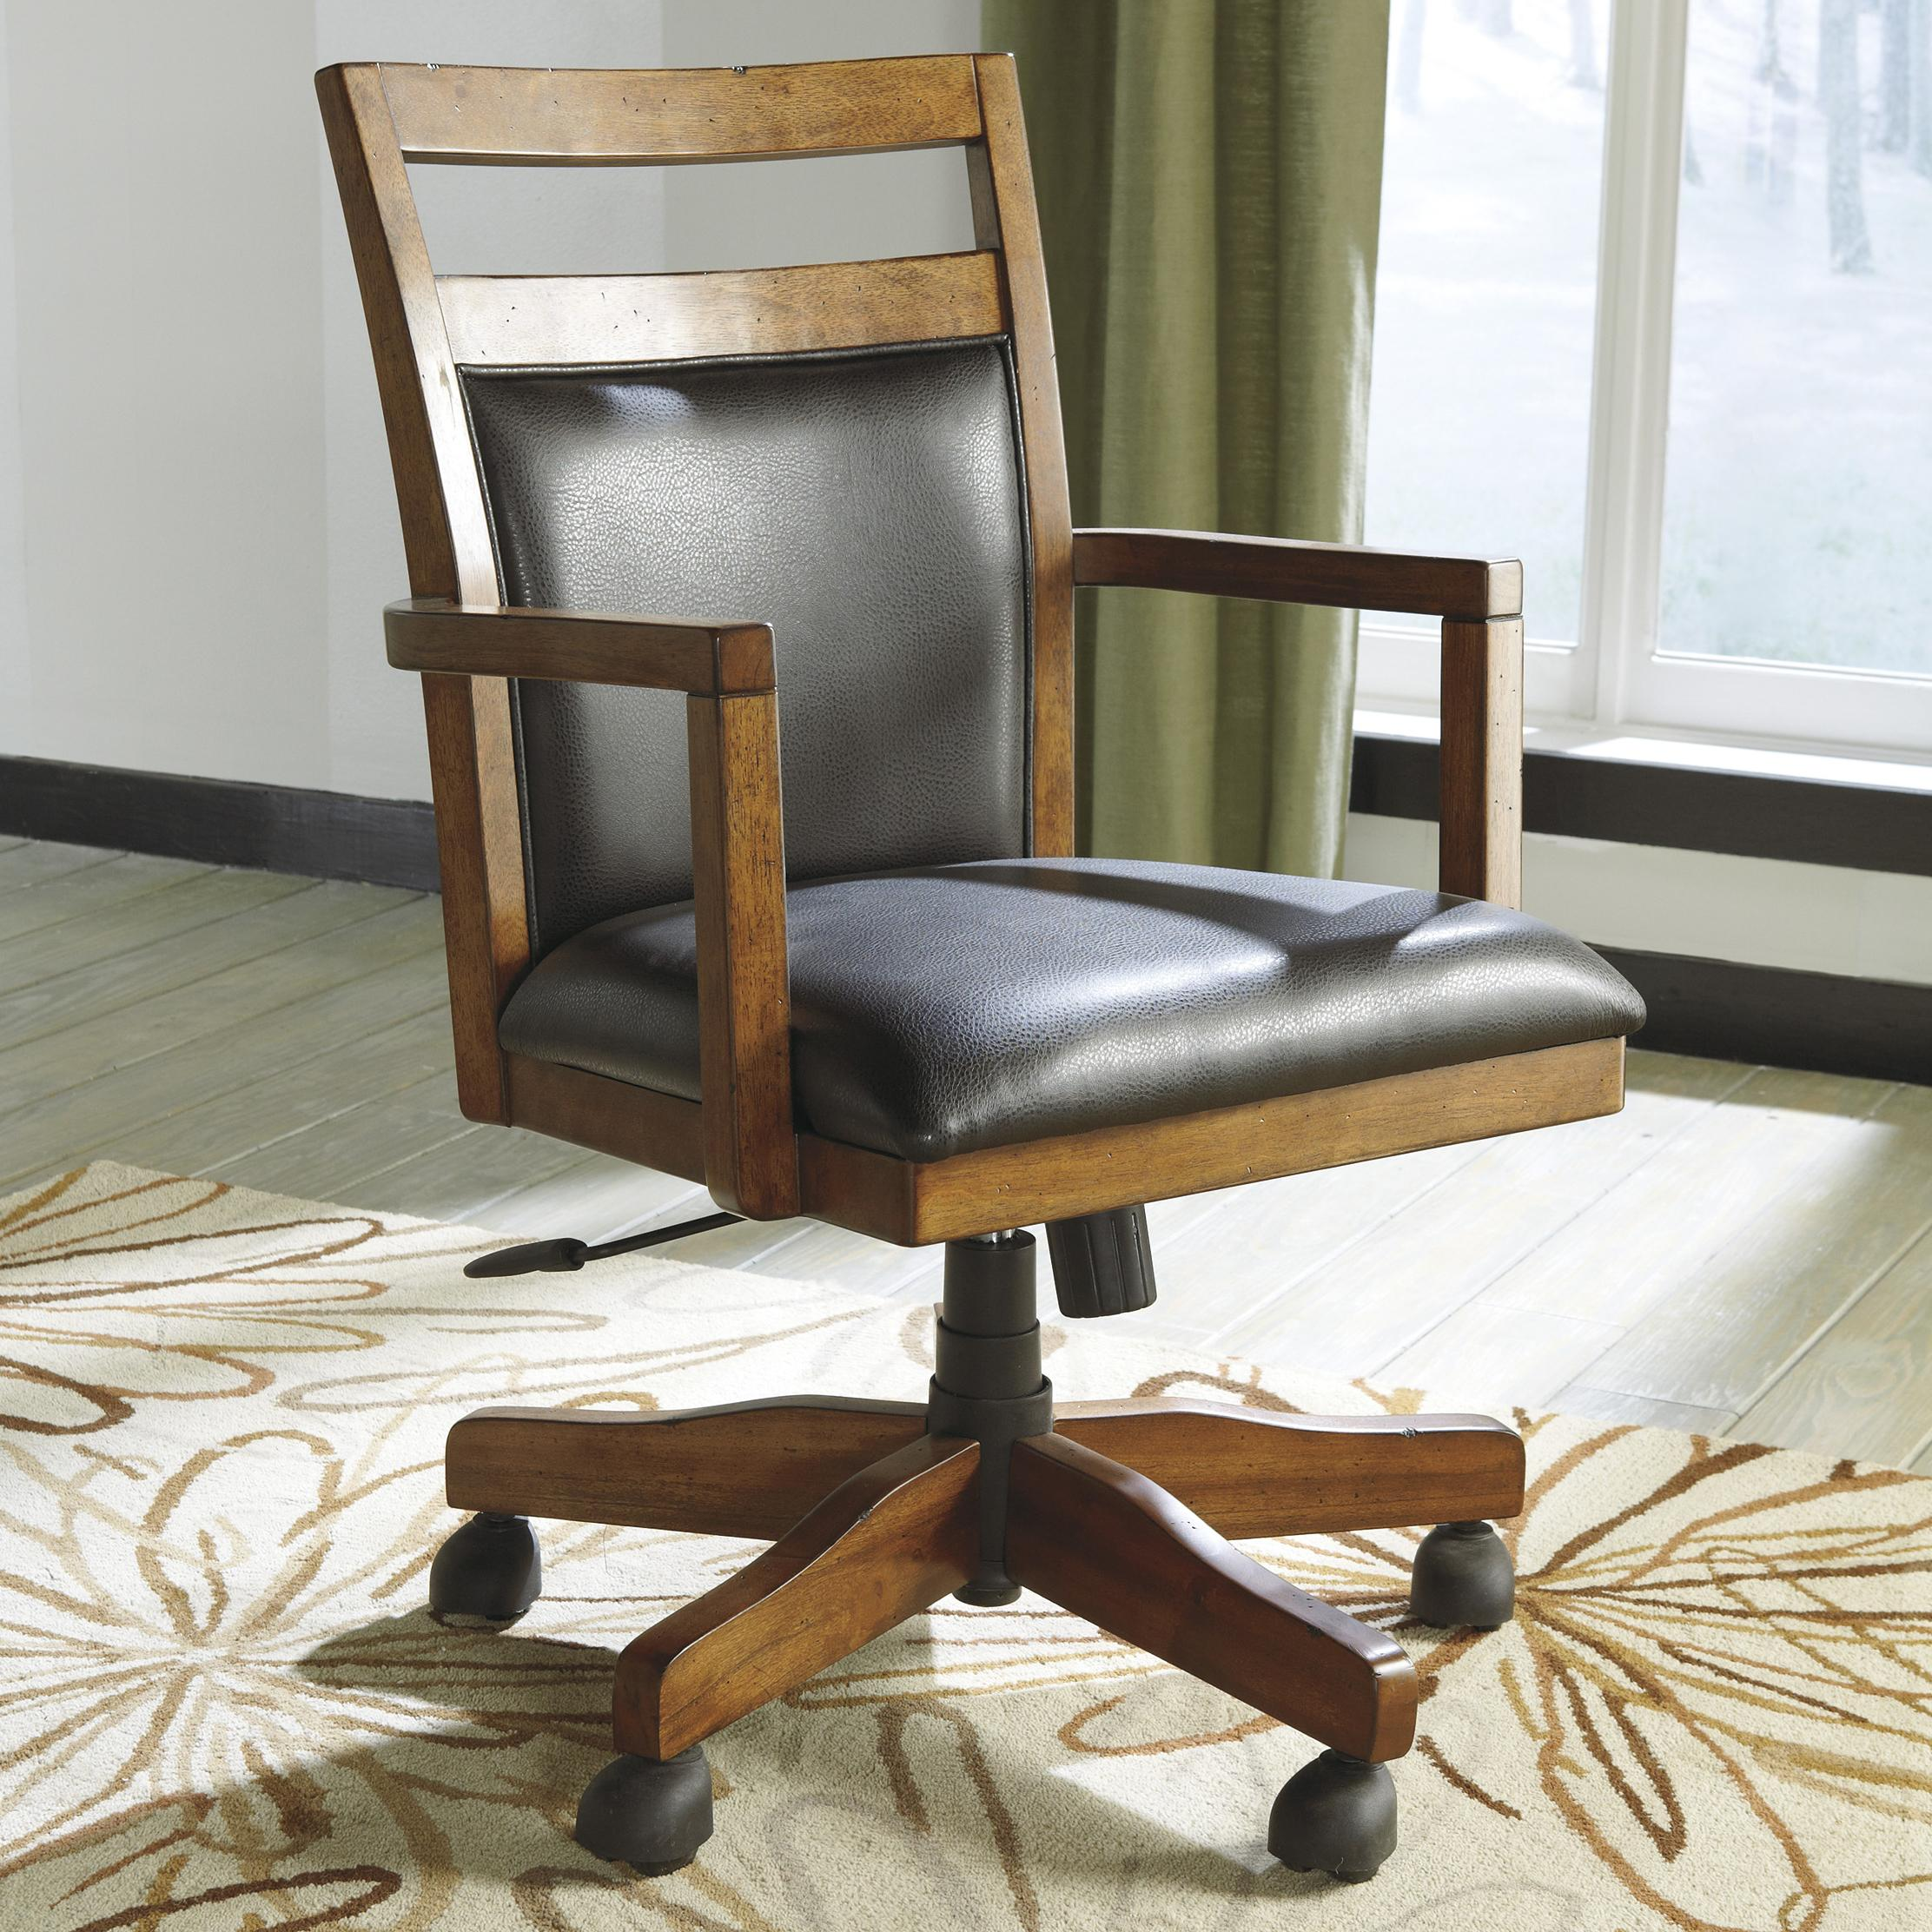 Signature Design by Ashley Lobink Home Office Desk Chair - Item Number: H641-01A